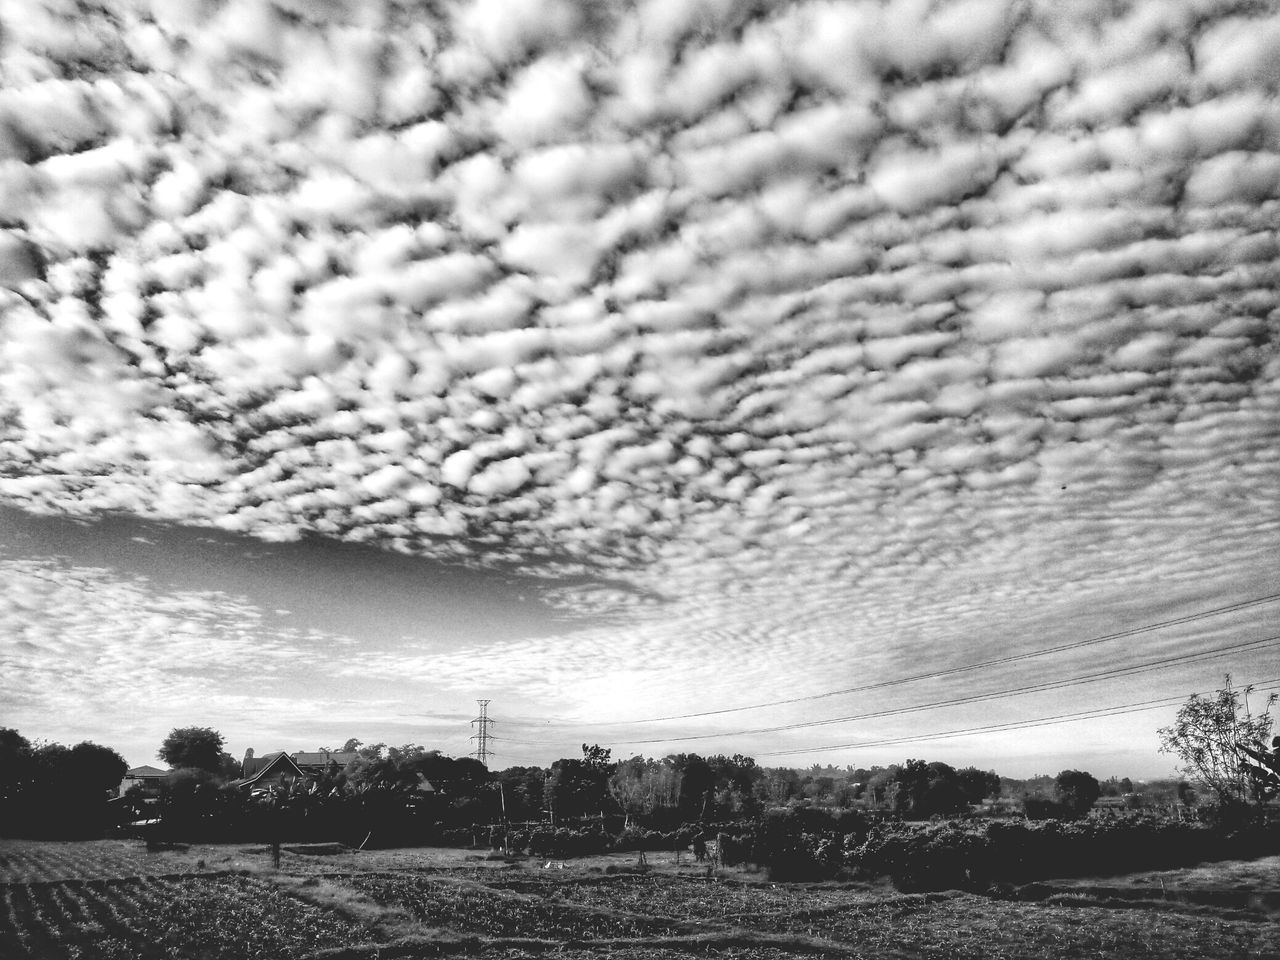 sky, nature, cloud - sky, tree, no people, beauty in nature, tranquility, scenics, field, landscape, outdoors, agriculture, day, rural scene, growth